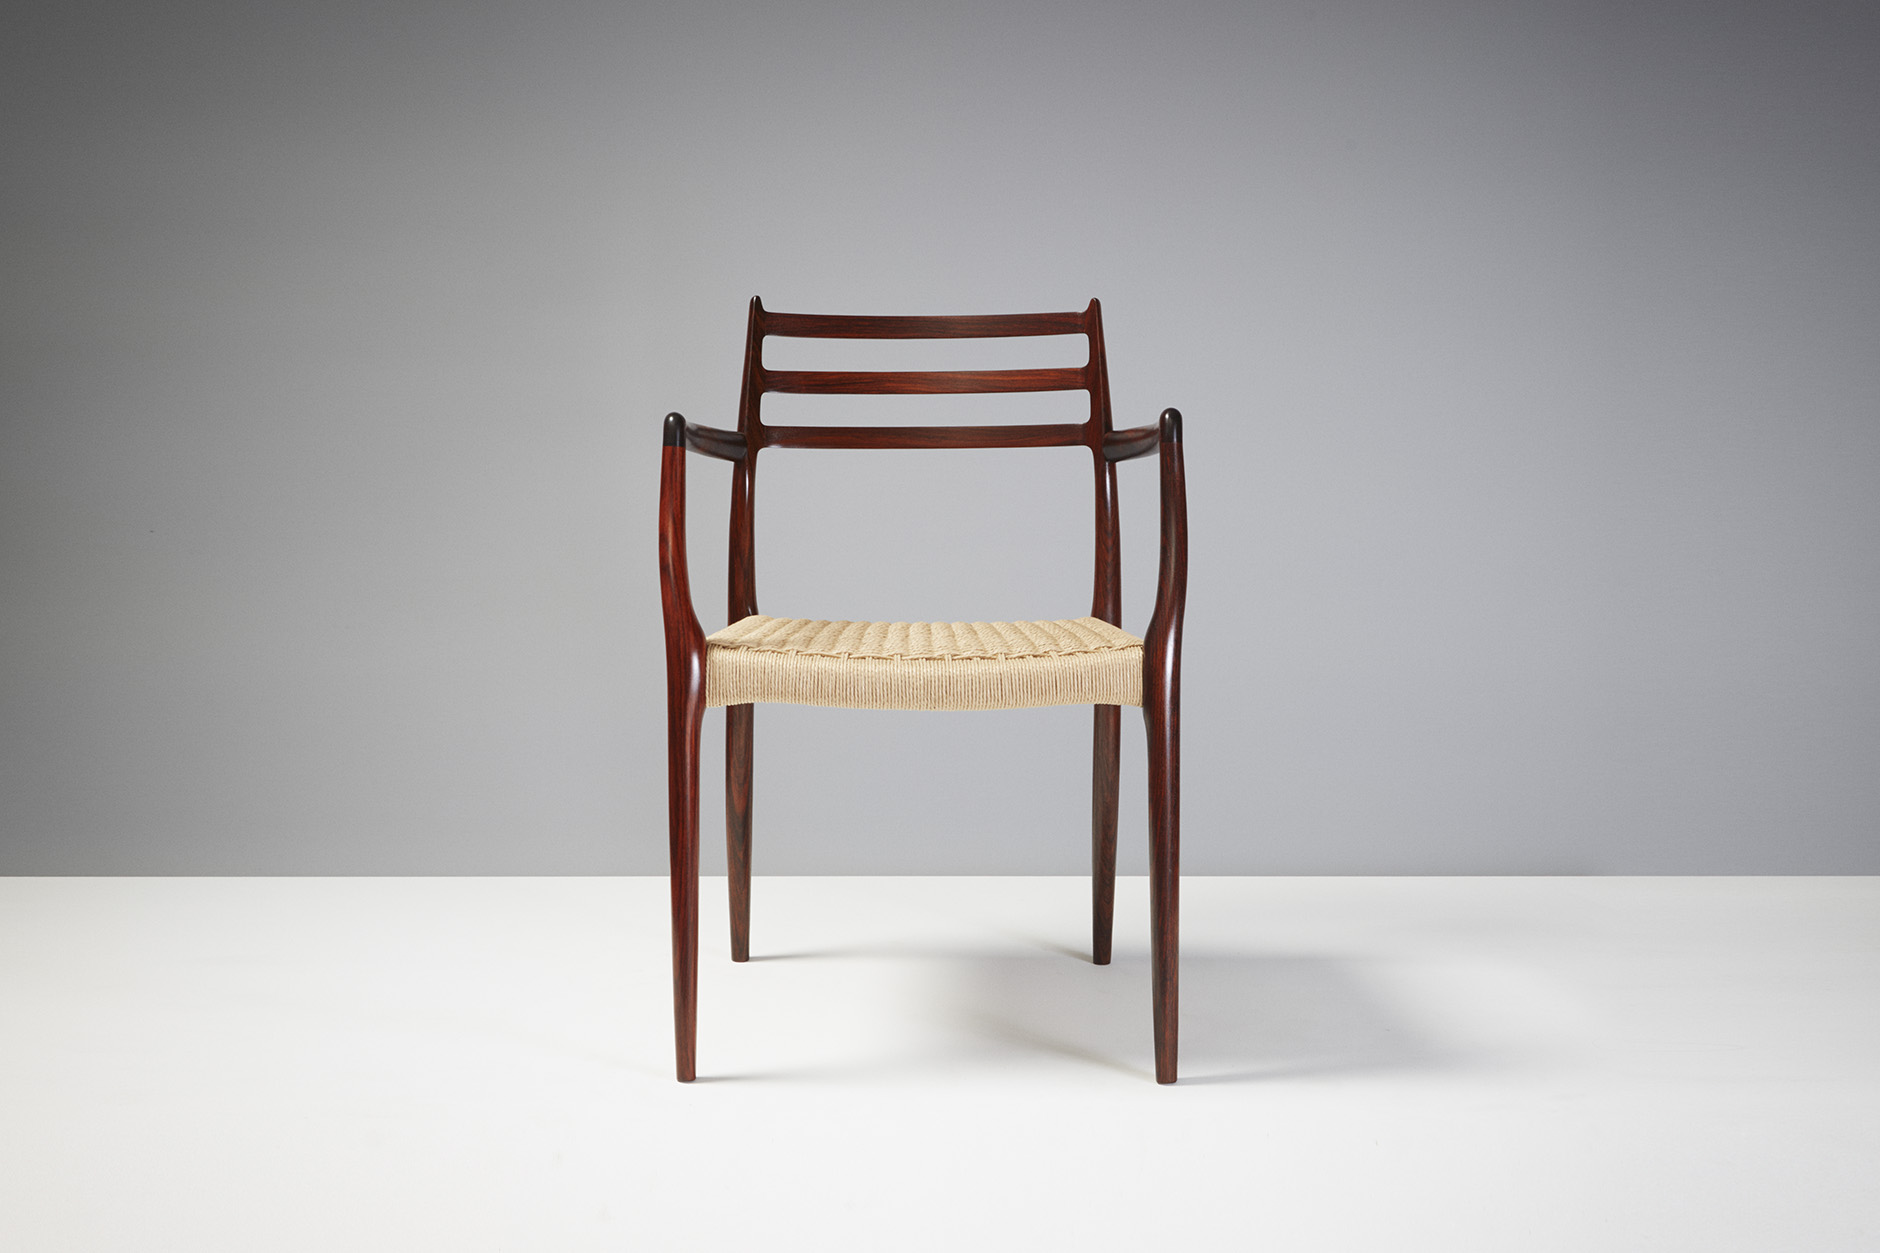 ... Rosewood Lounge Chair. Over The Course Of The Three Month Exhibition, A  Wide Variety Of Designers And Styles Will Be Showcased On A Rotating Basis,  ...